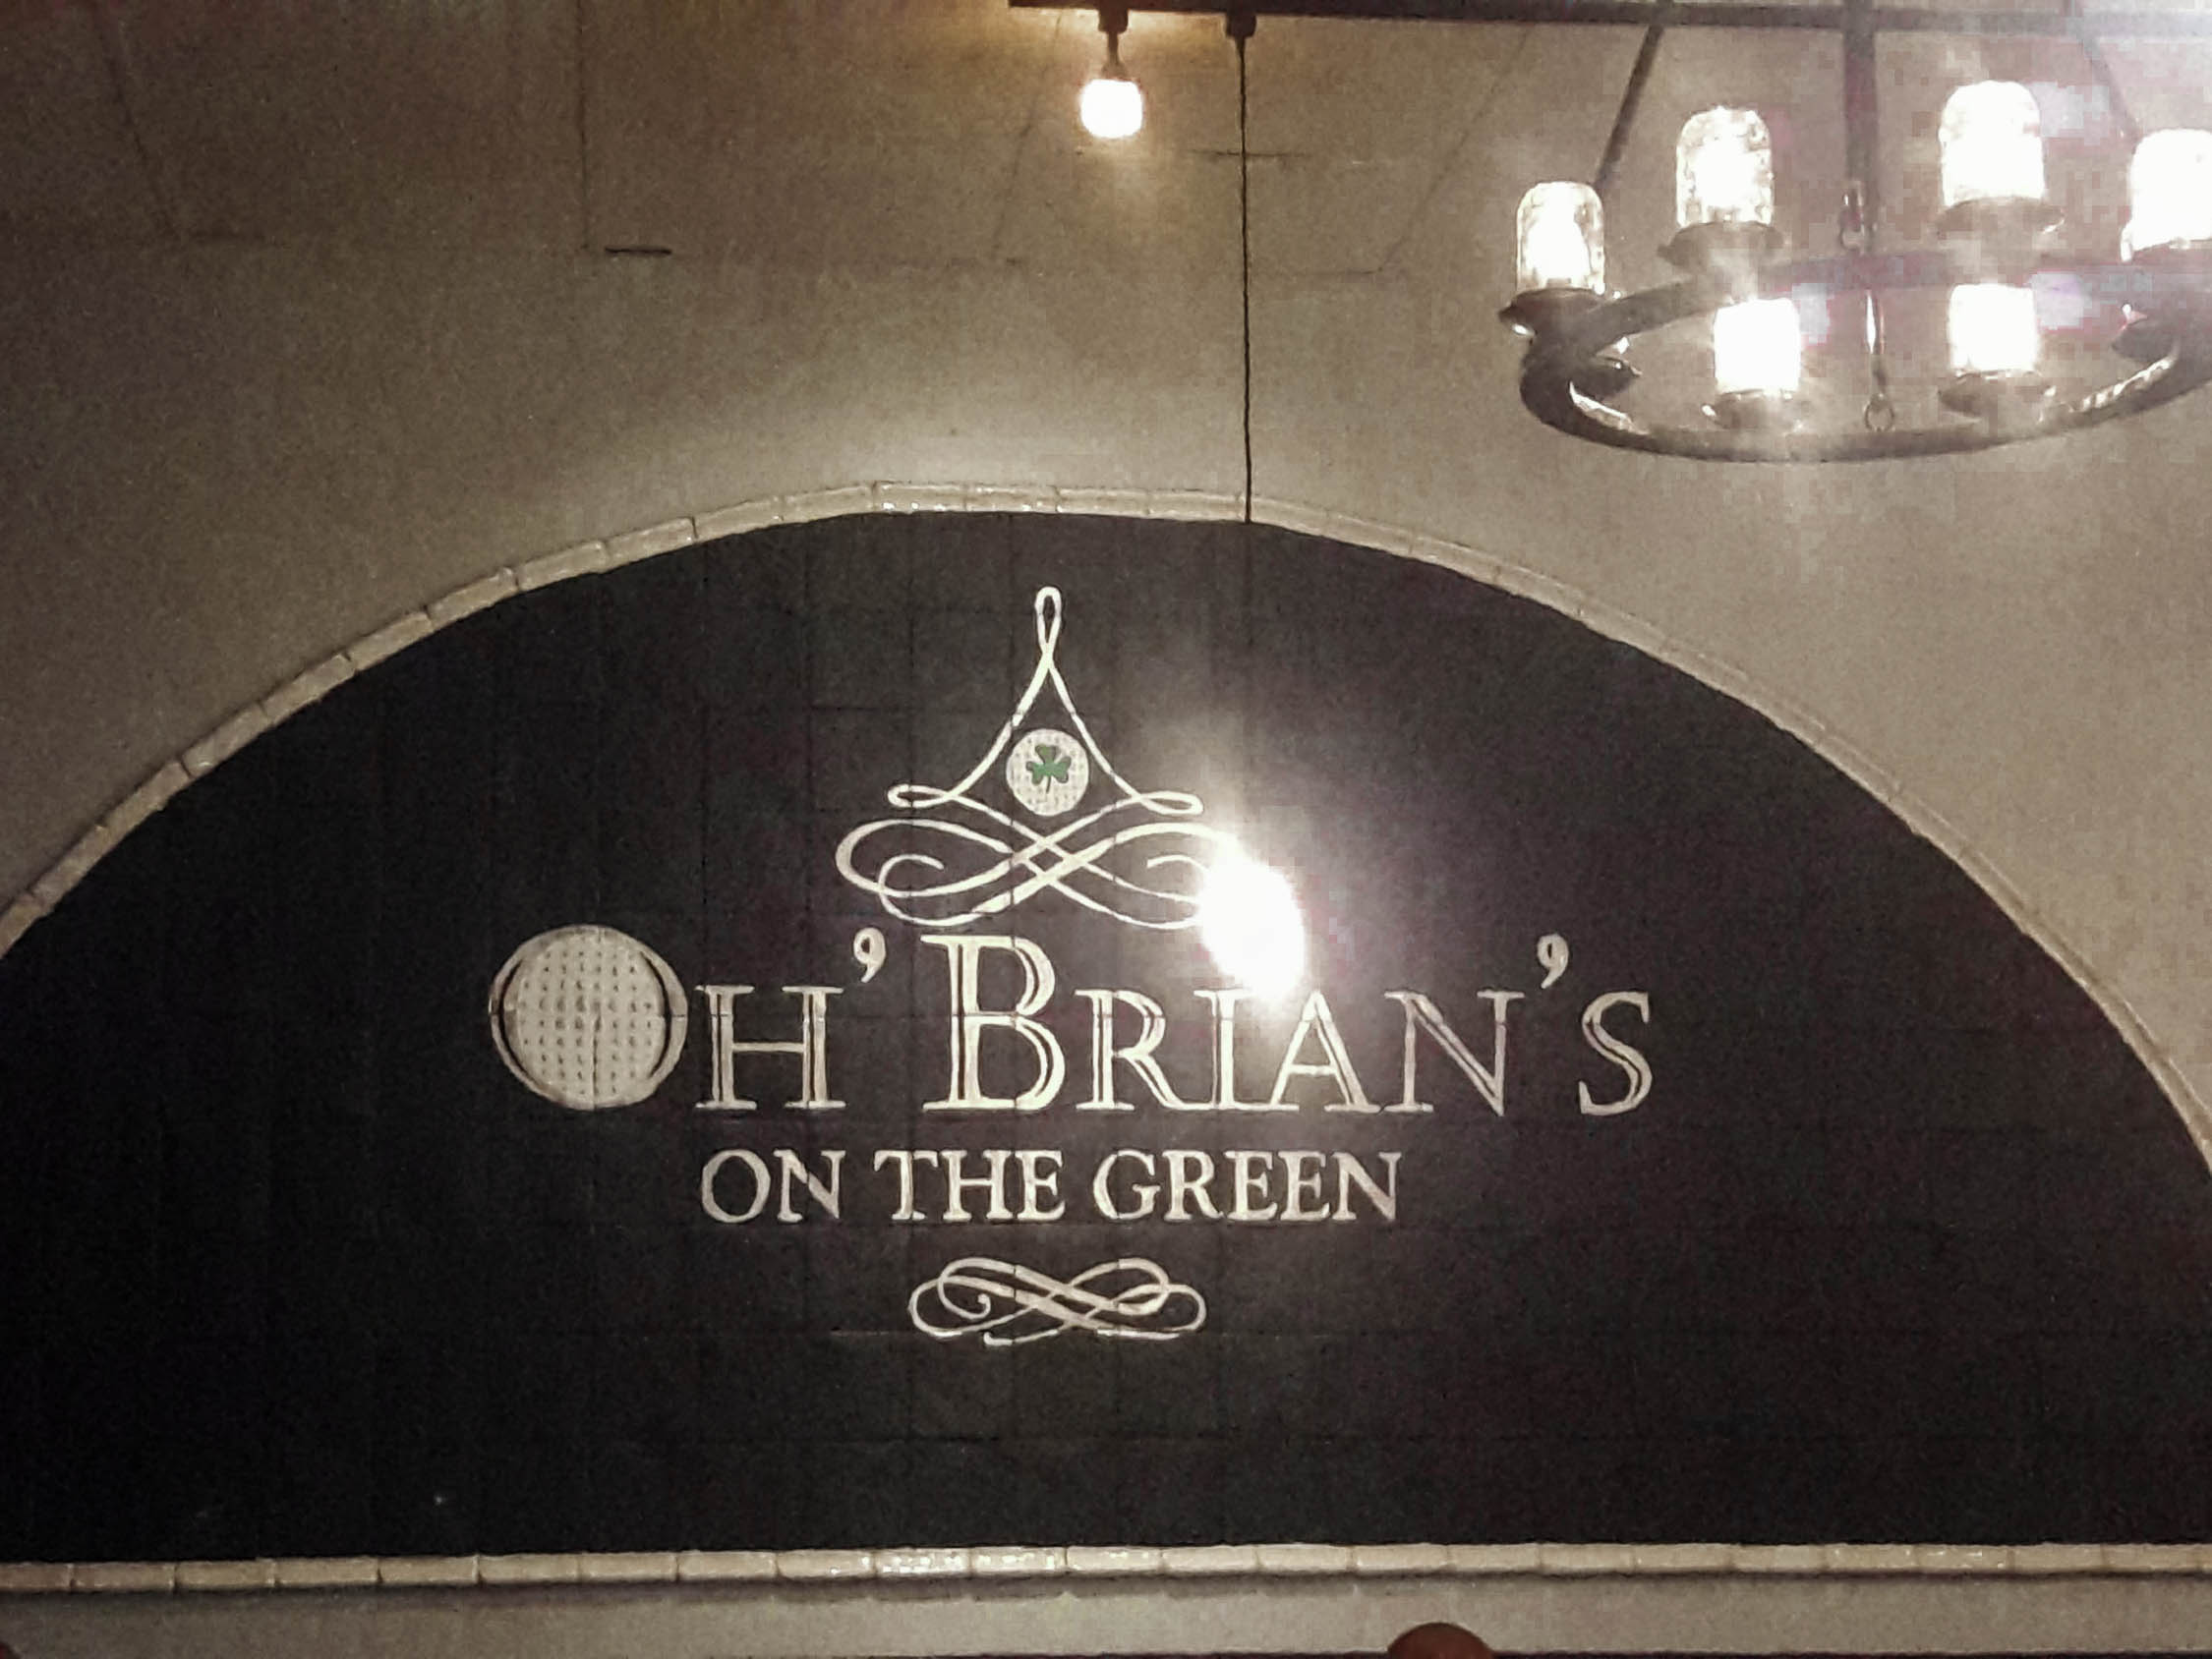 O'Brian's on the Green